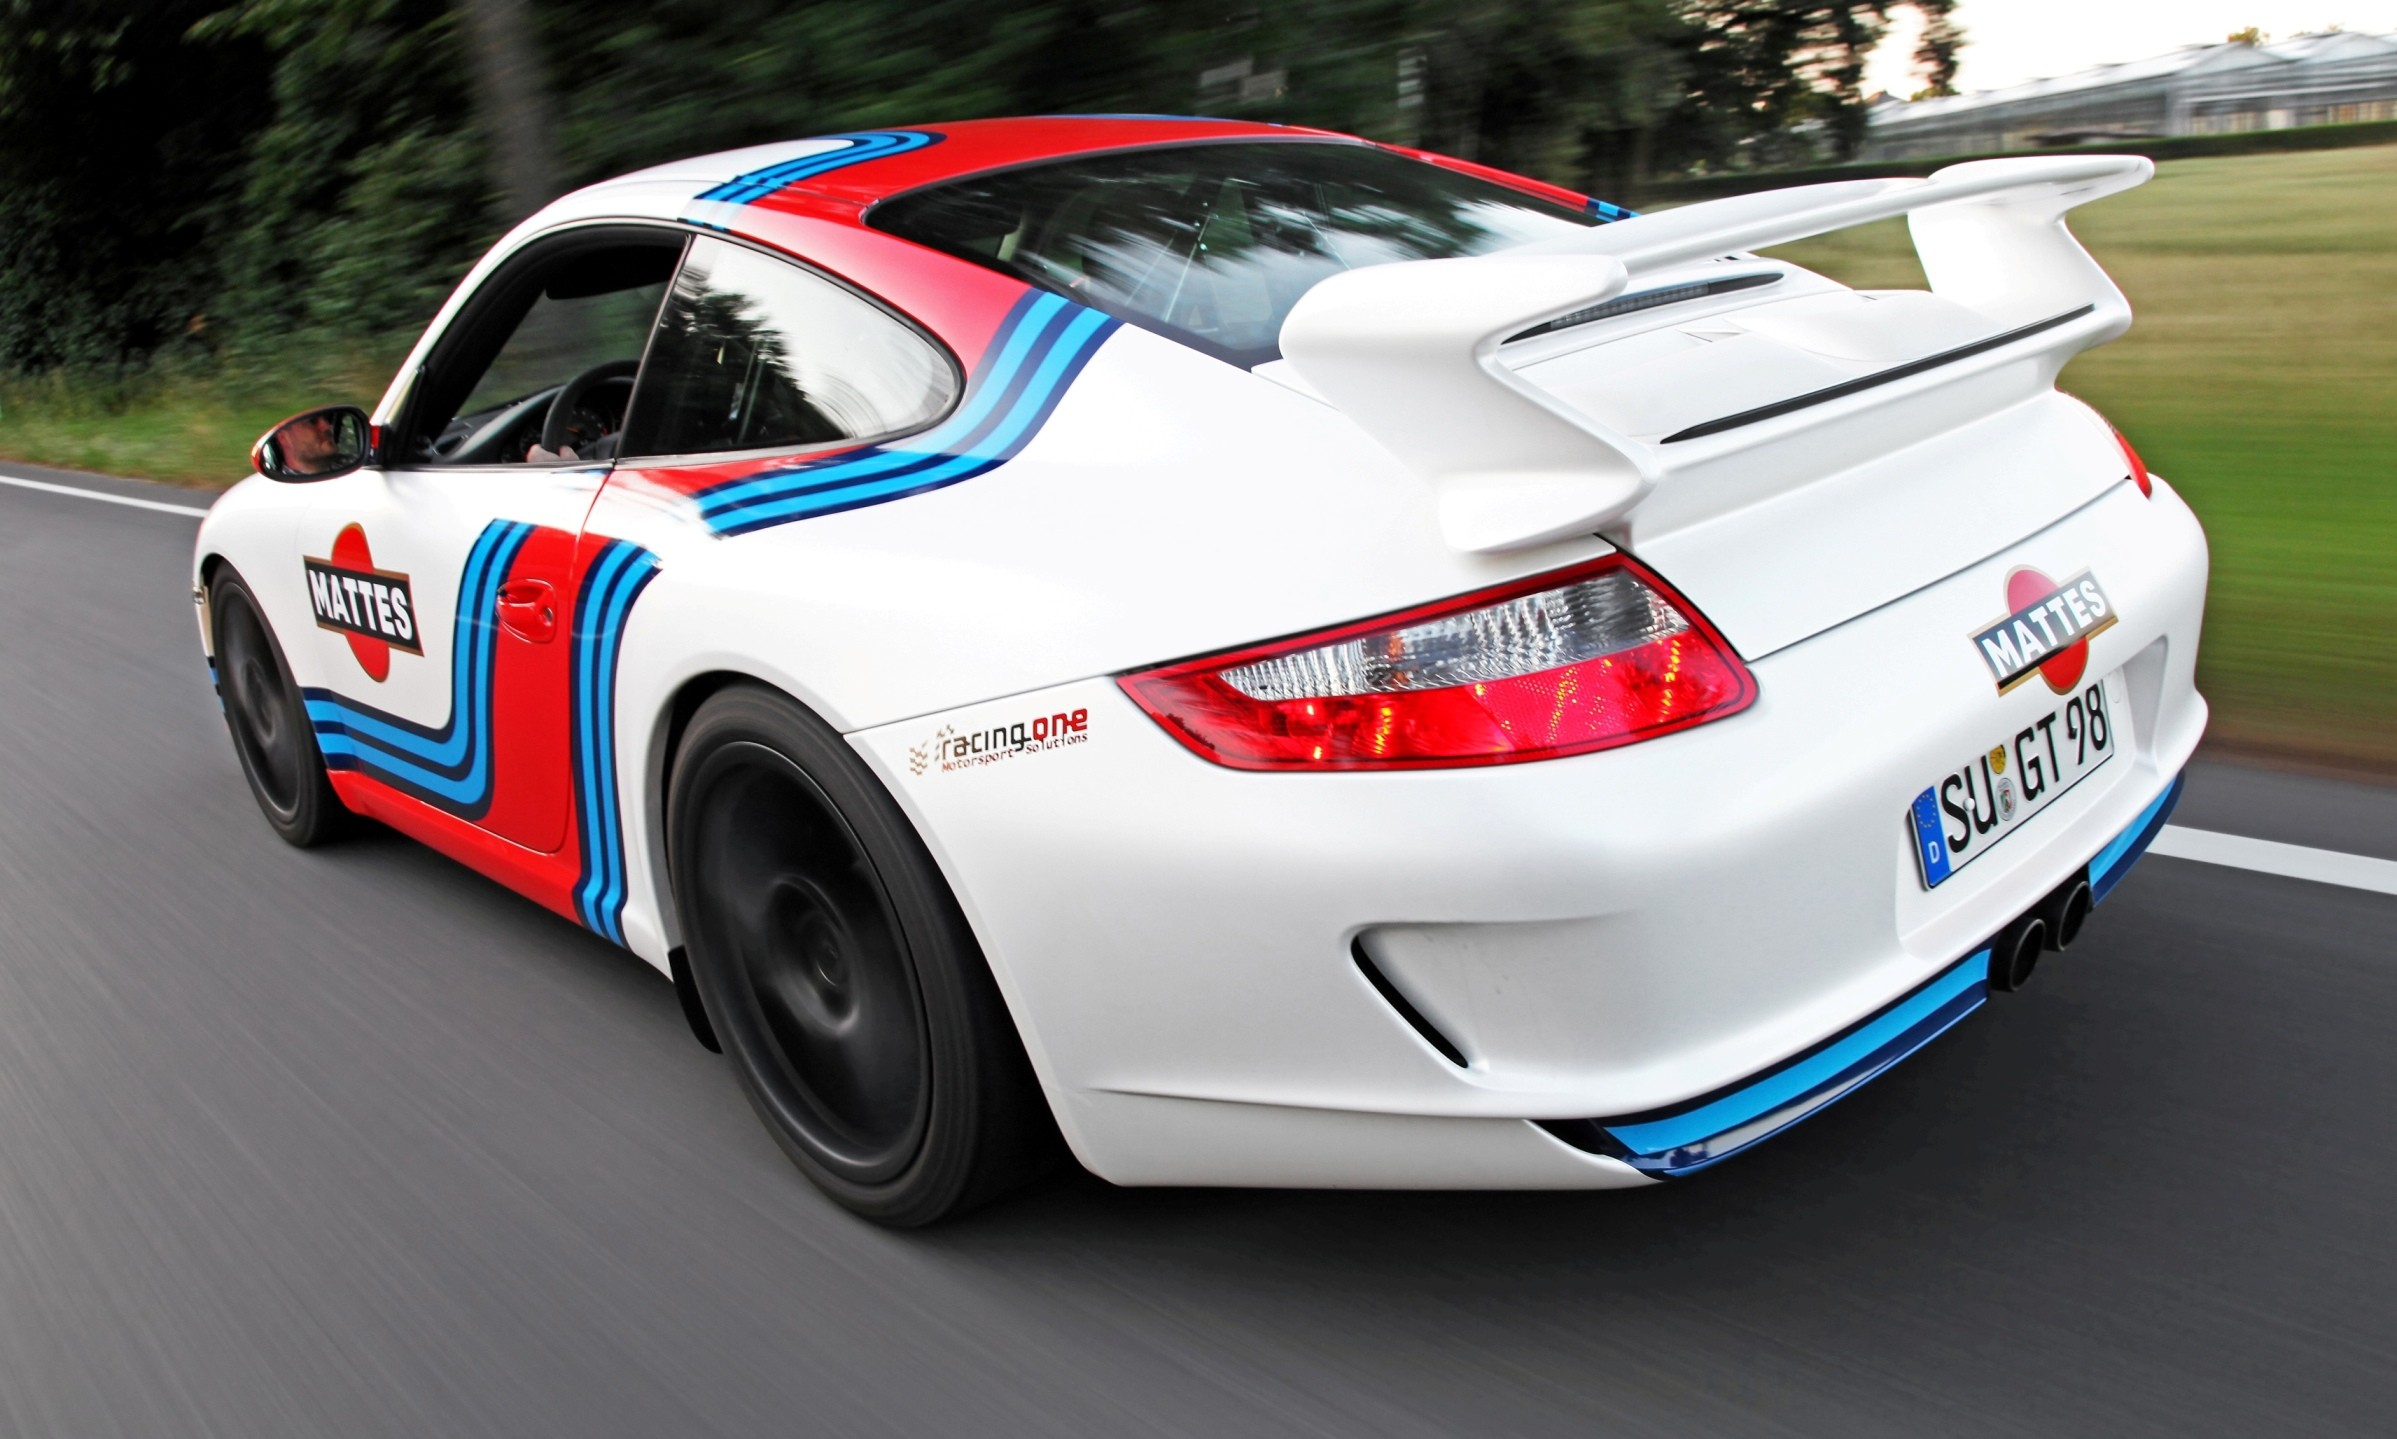 Germany Is Mad For Car Wraps Martini Style Racing Livery